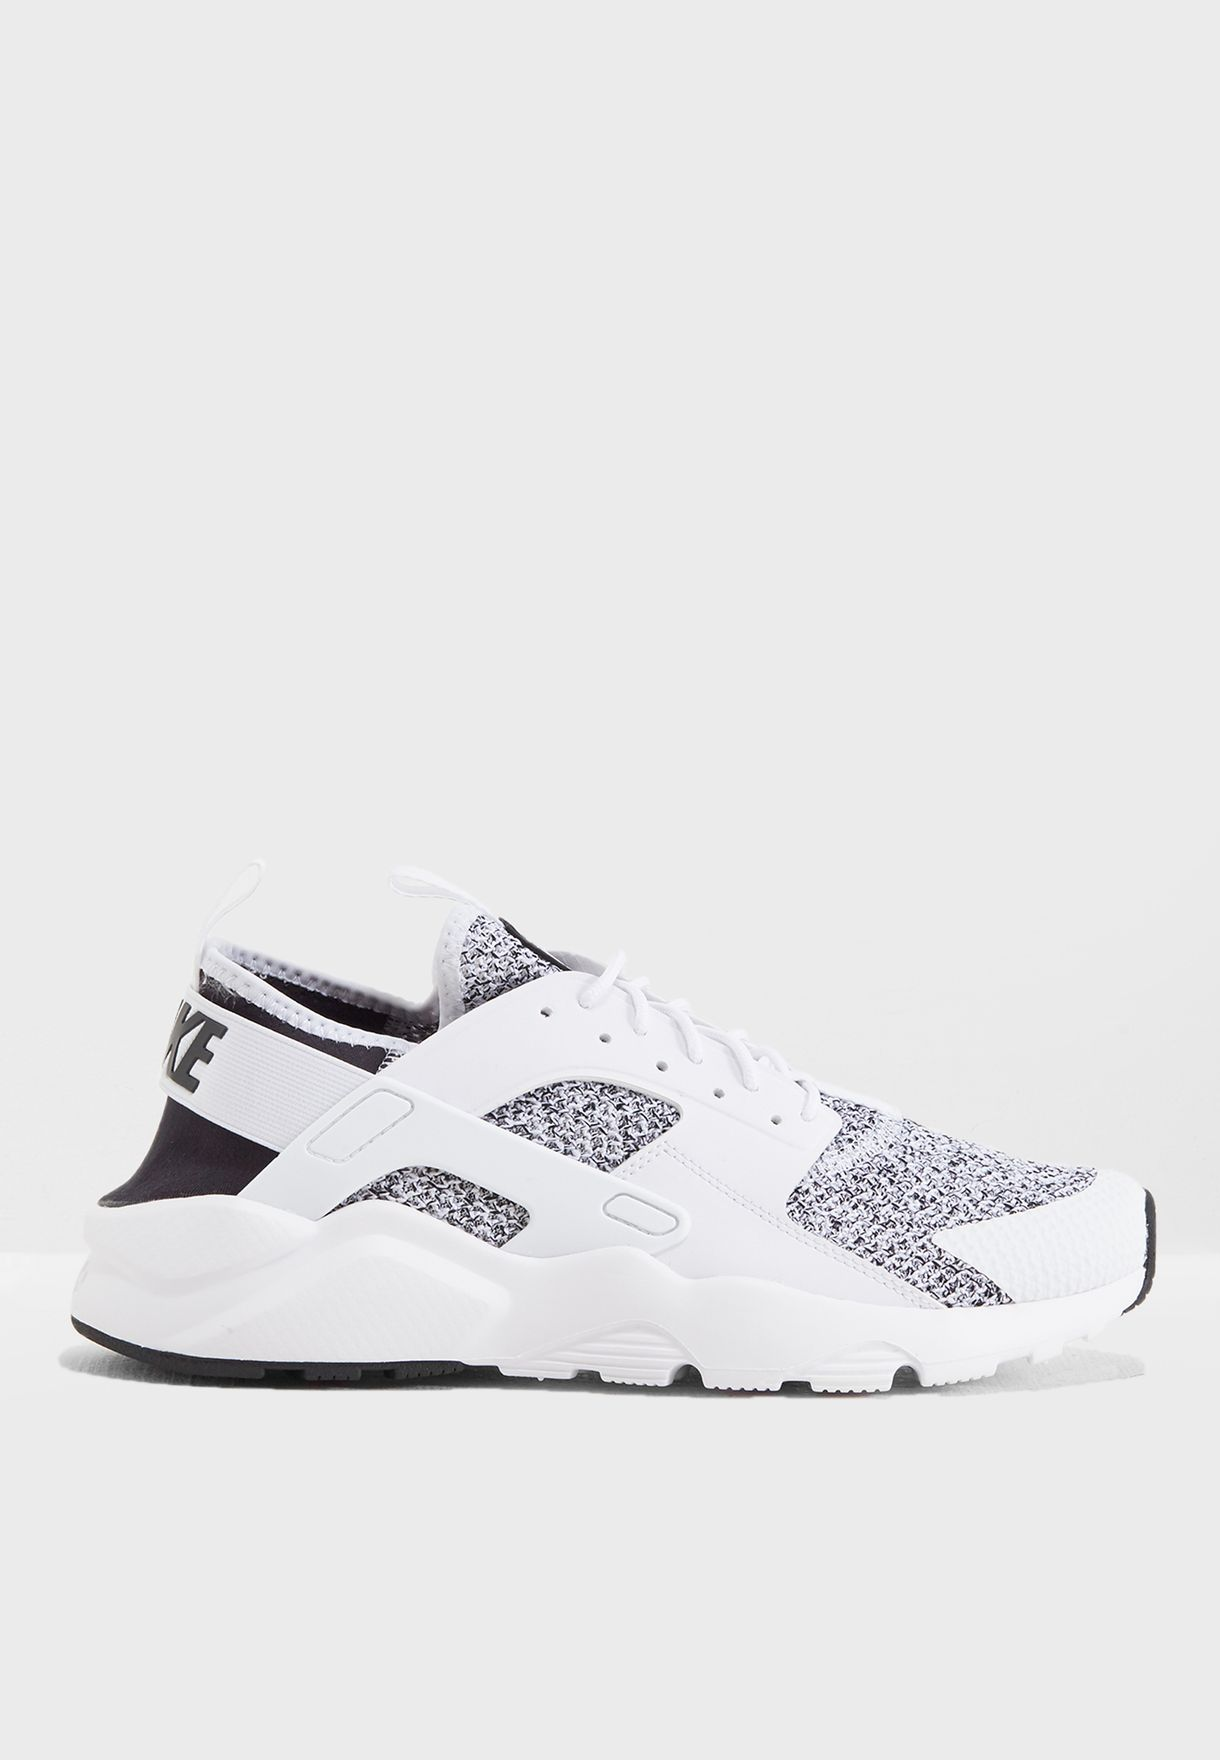 cb3b1dfdb2af Shop Nike white Air Huarache Run Ultra SE 875841-009 for Men in ...